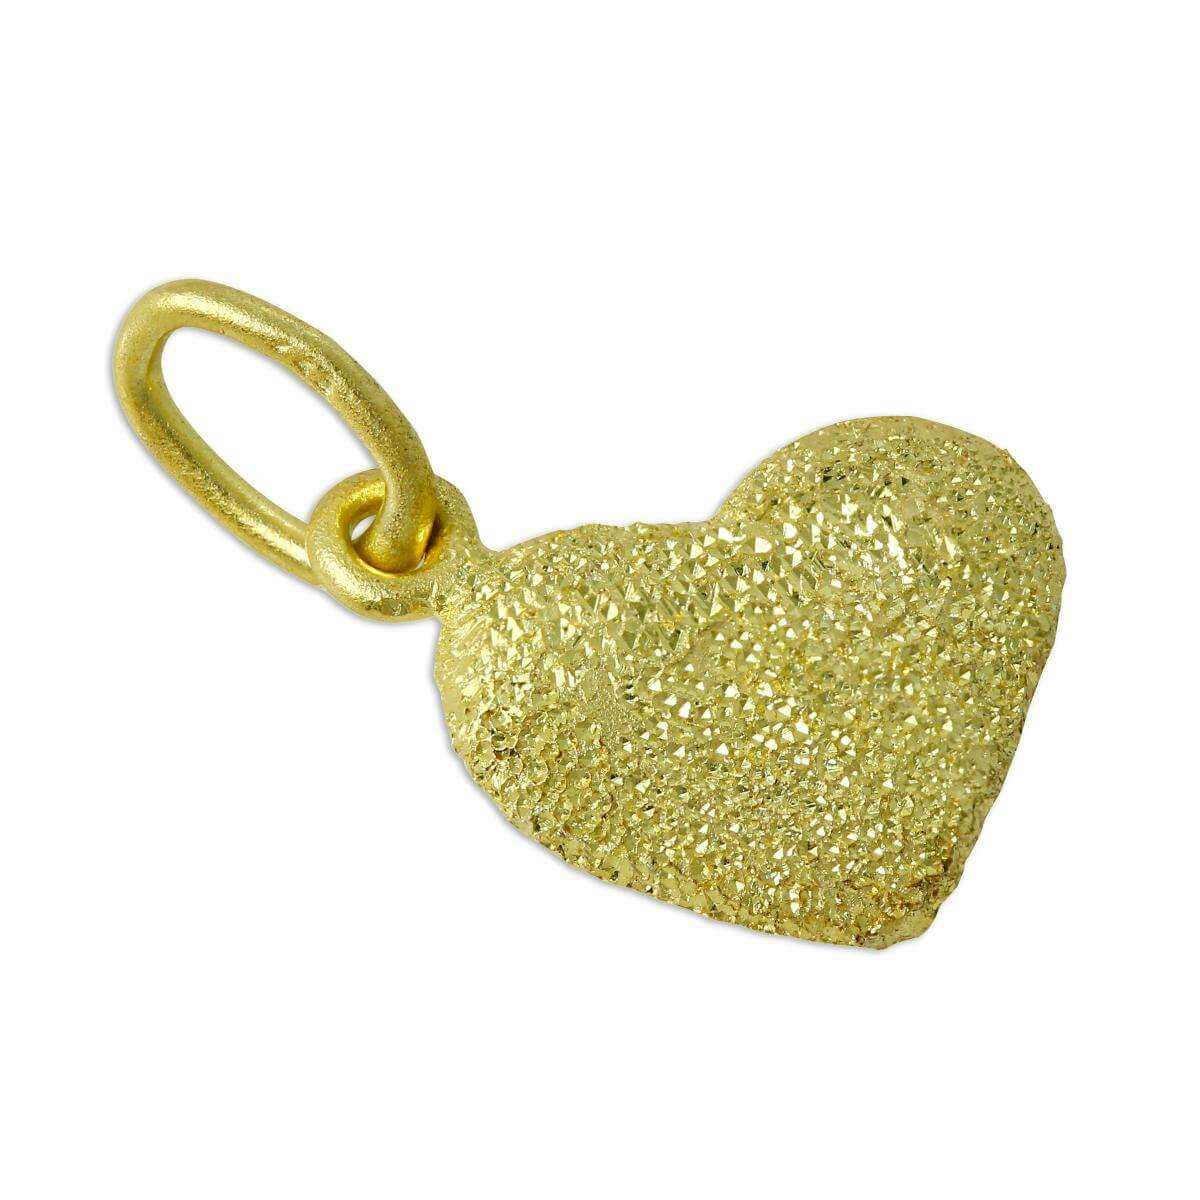 Frosted Gold Dipped Sterling Silver Puffed Heart Charm